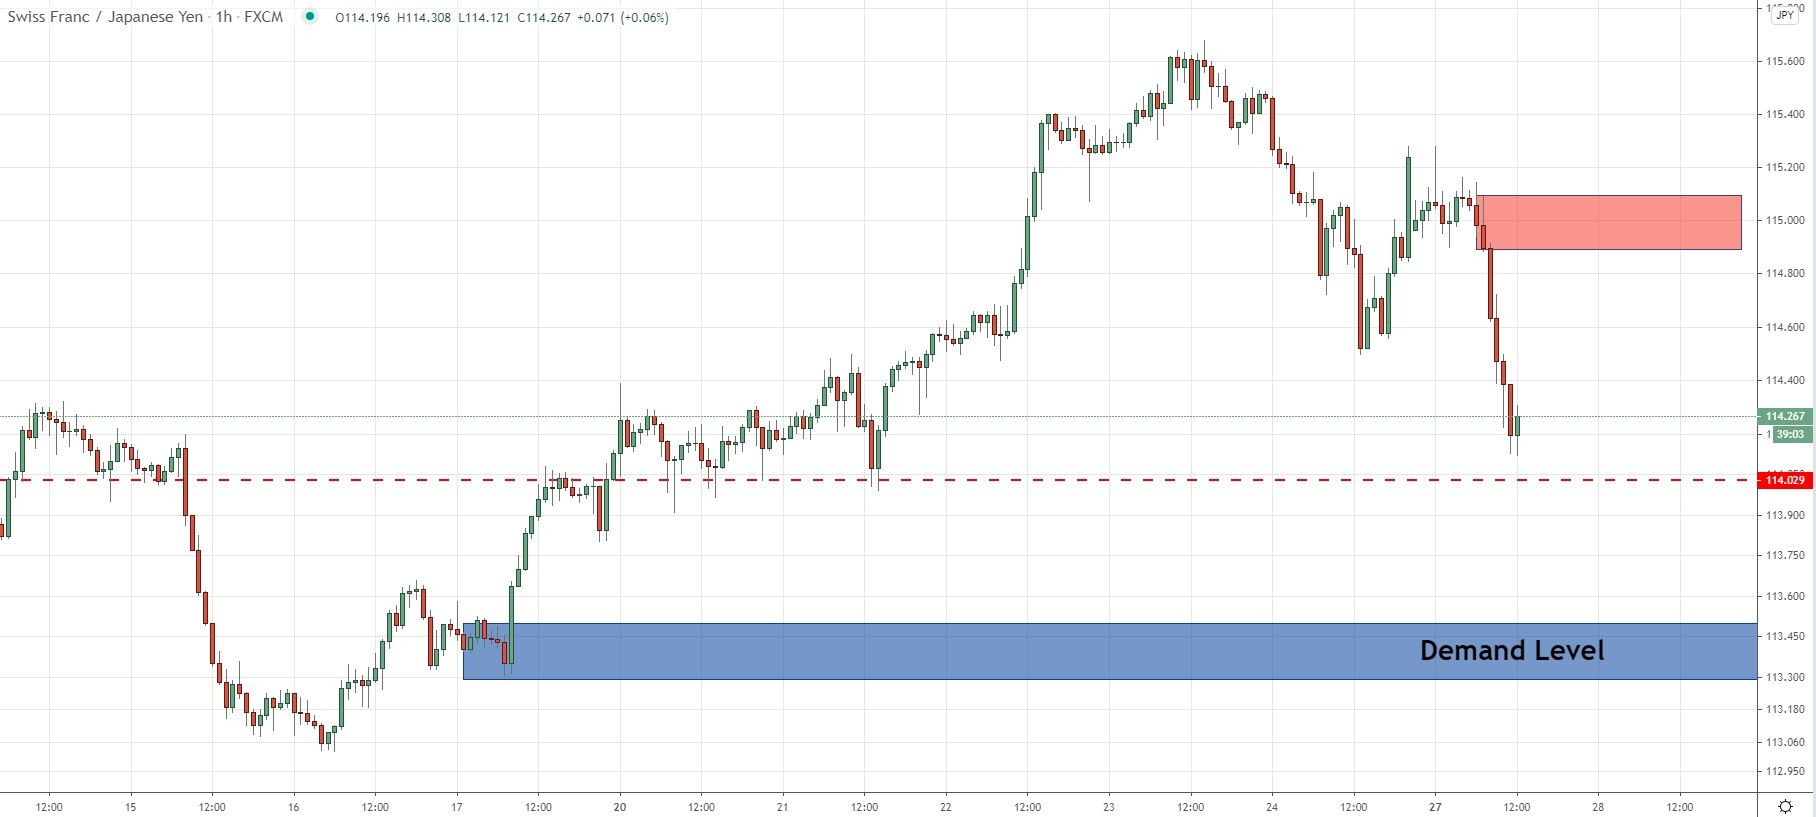 CHFJPY next critical levels for positions